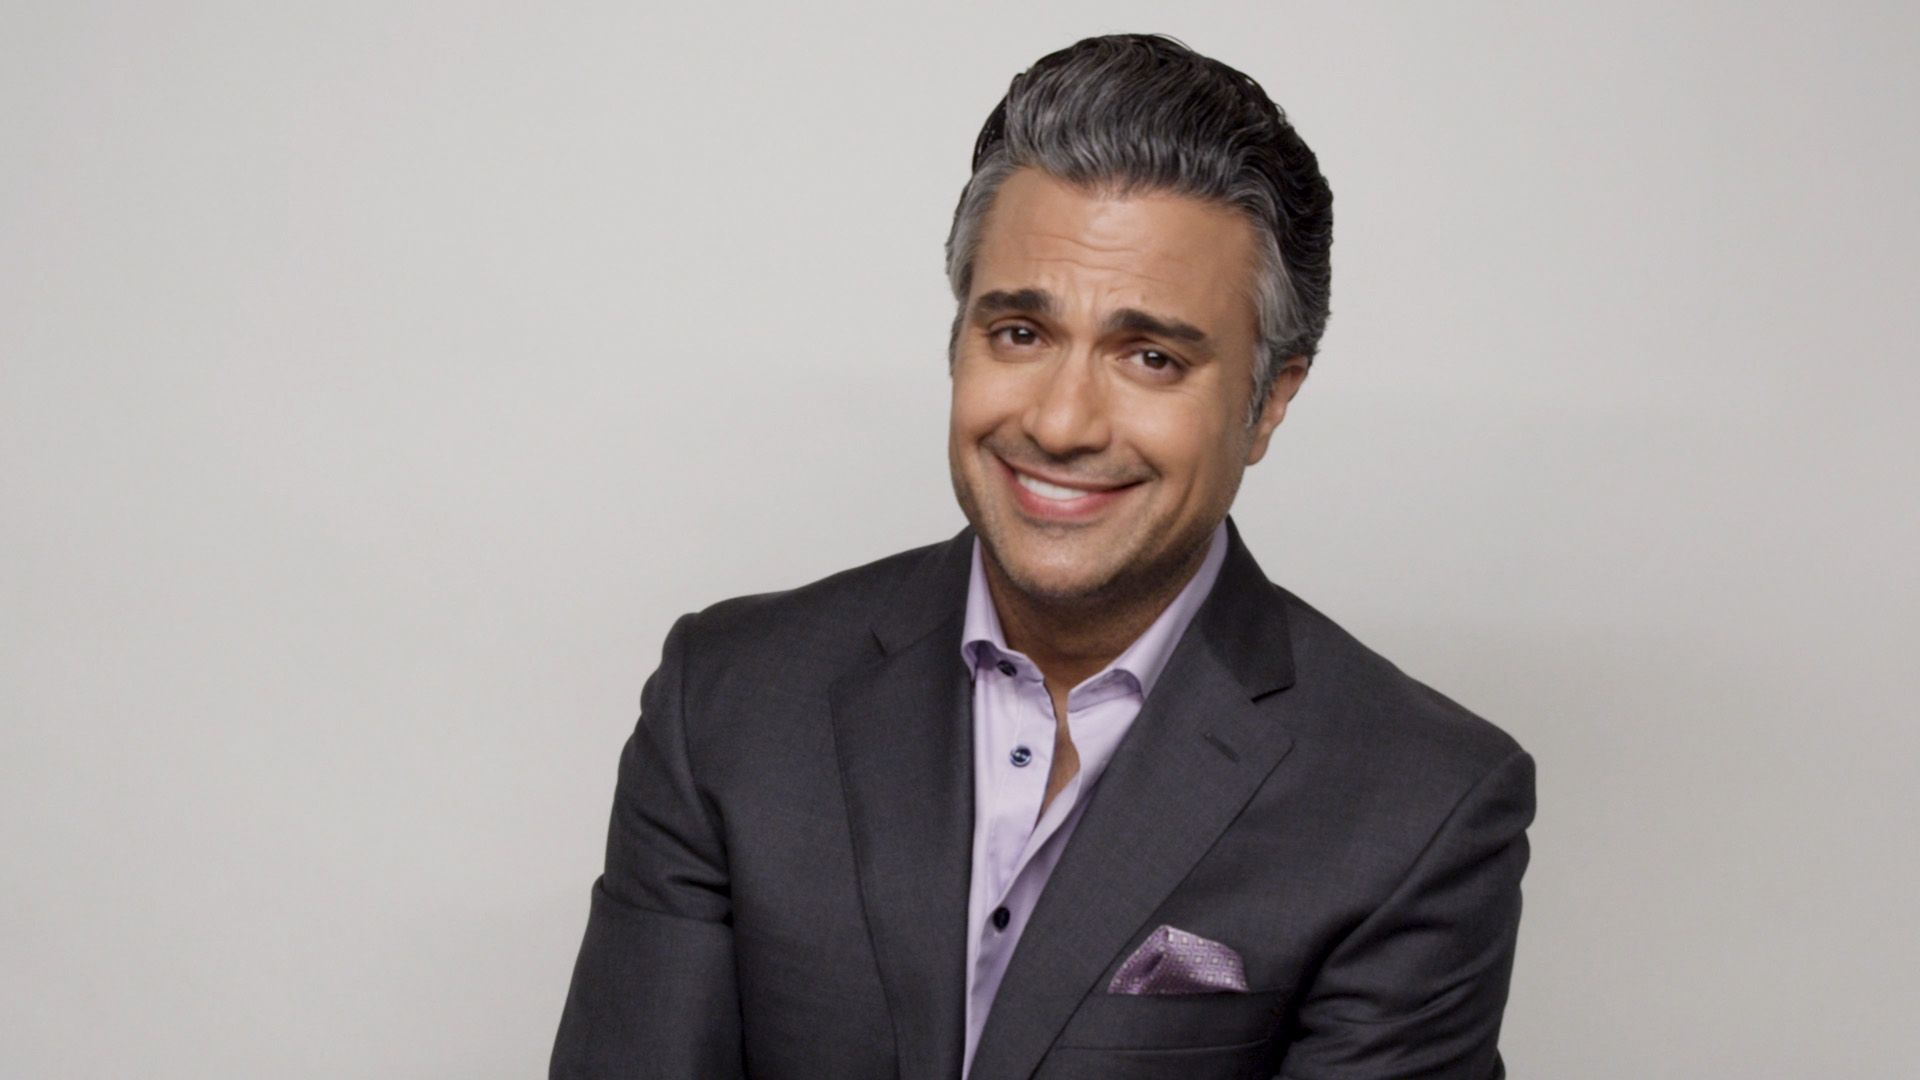 Jane the Virgin's Rogelio Reveals Who He'd Rather Get His Nails Done With: Oprah or Gayle